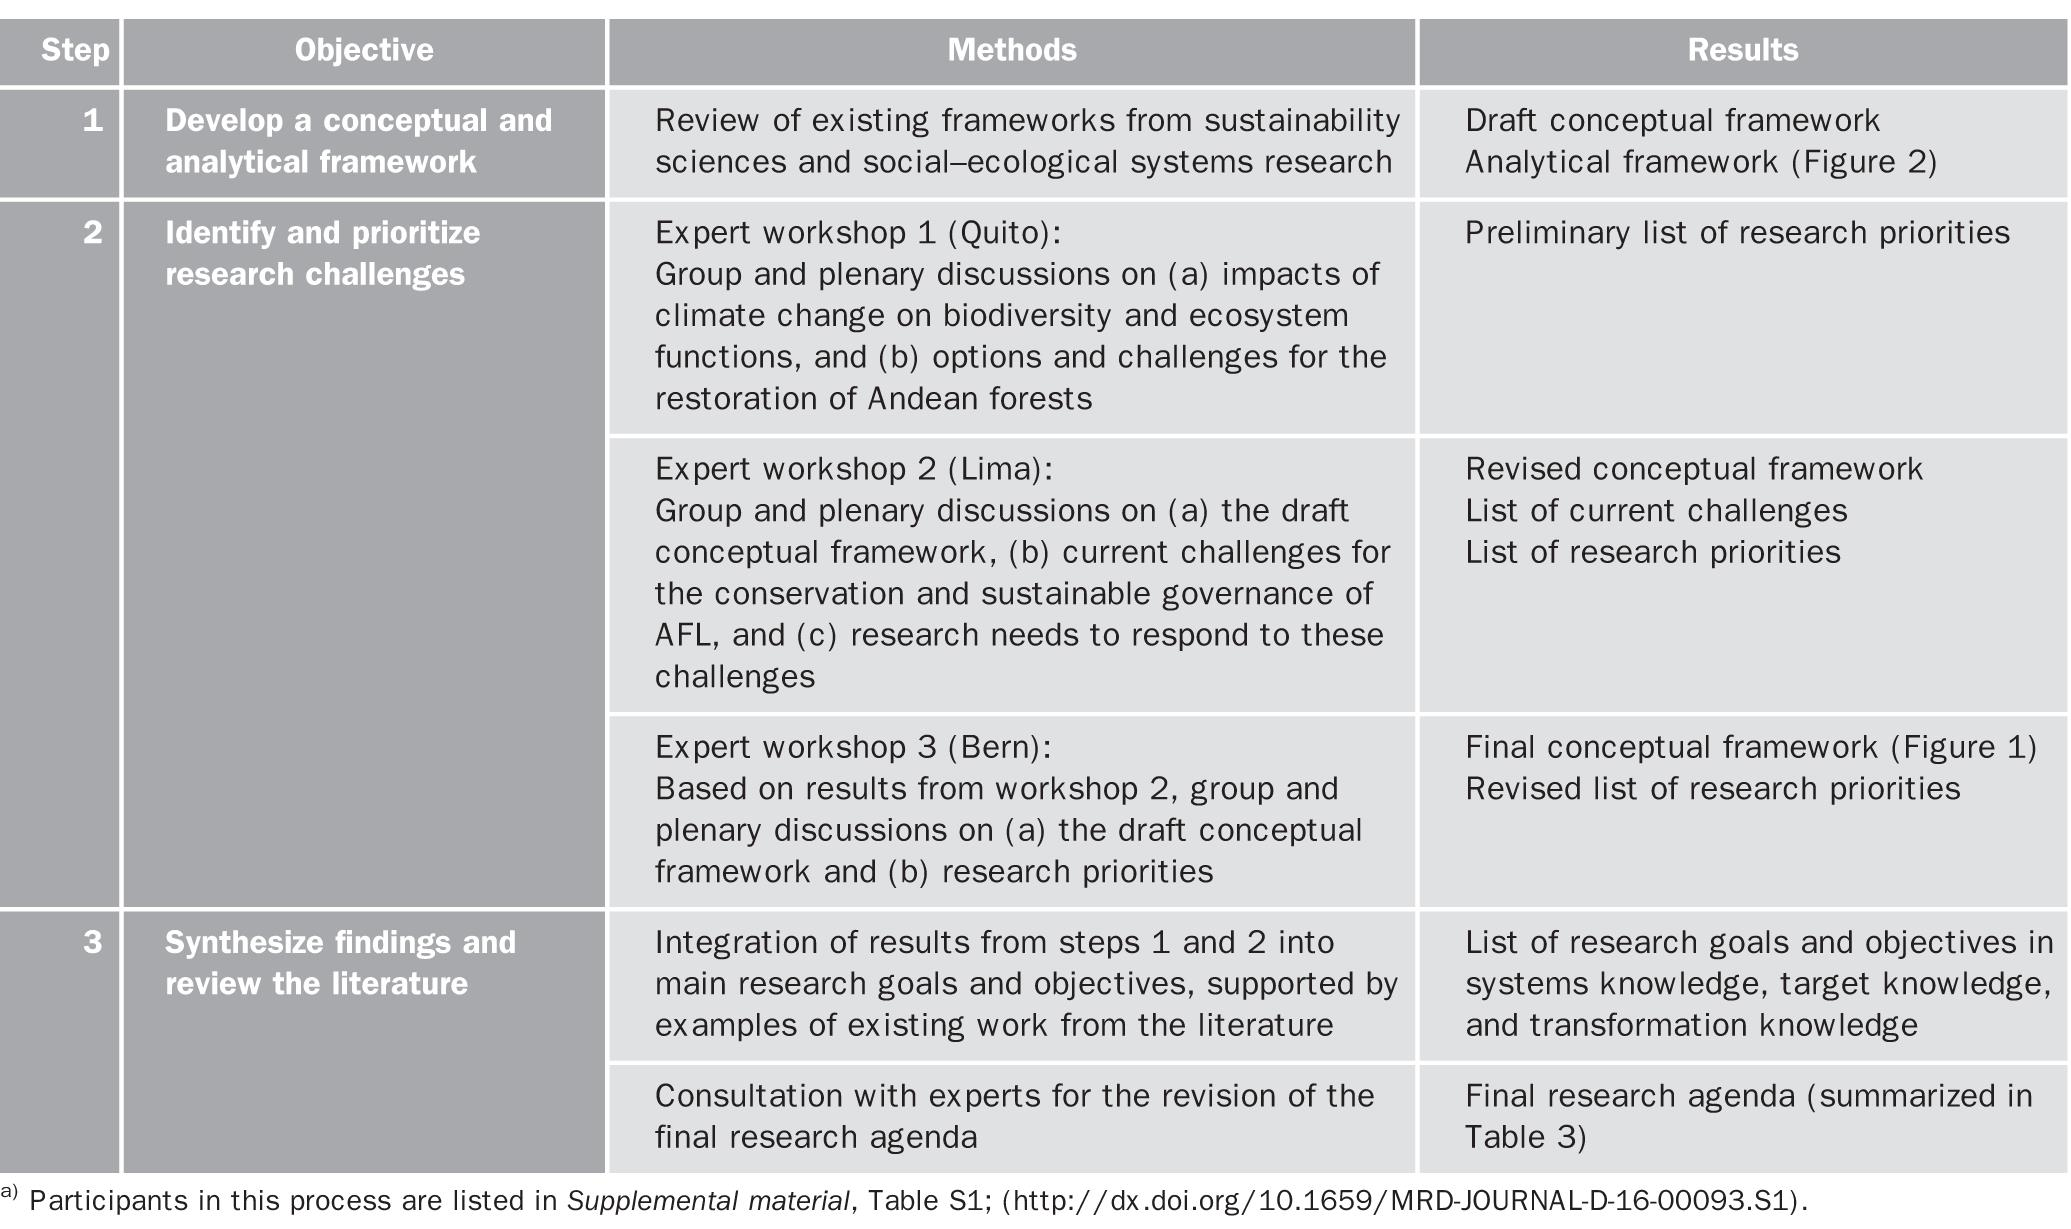 Research Priorities for the Conservation and Sustainable